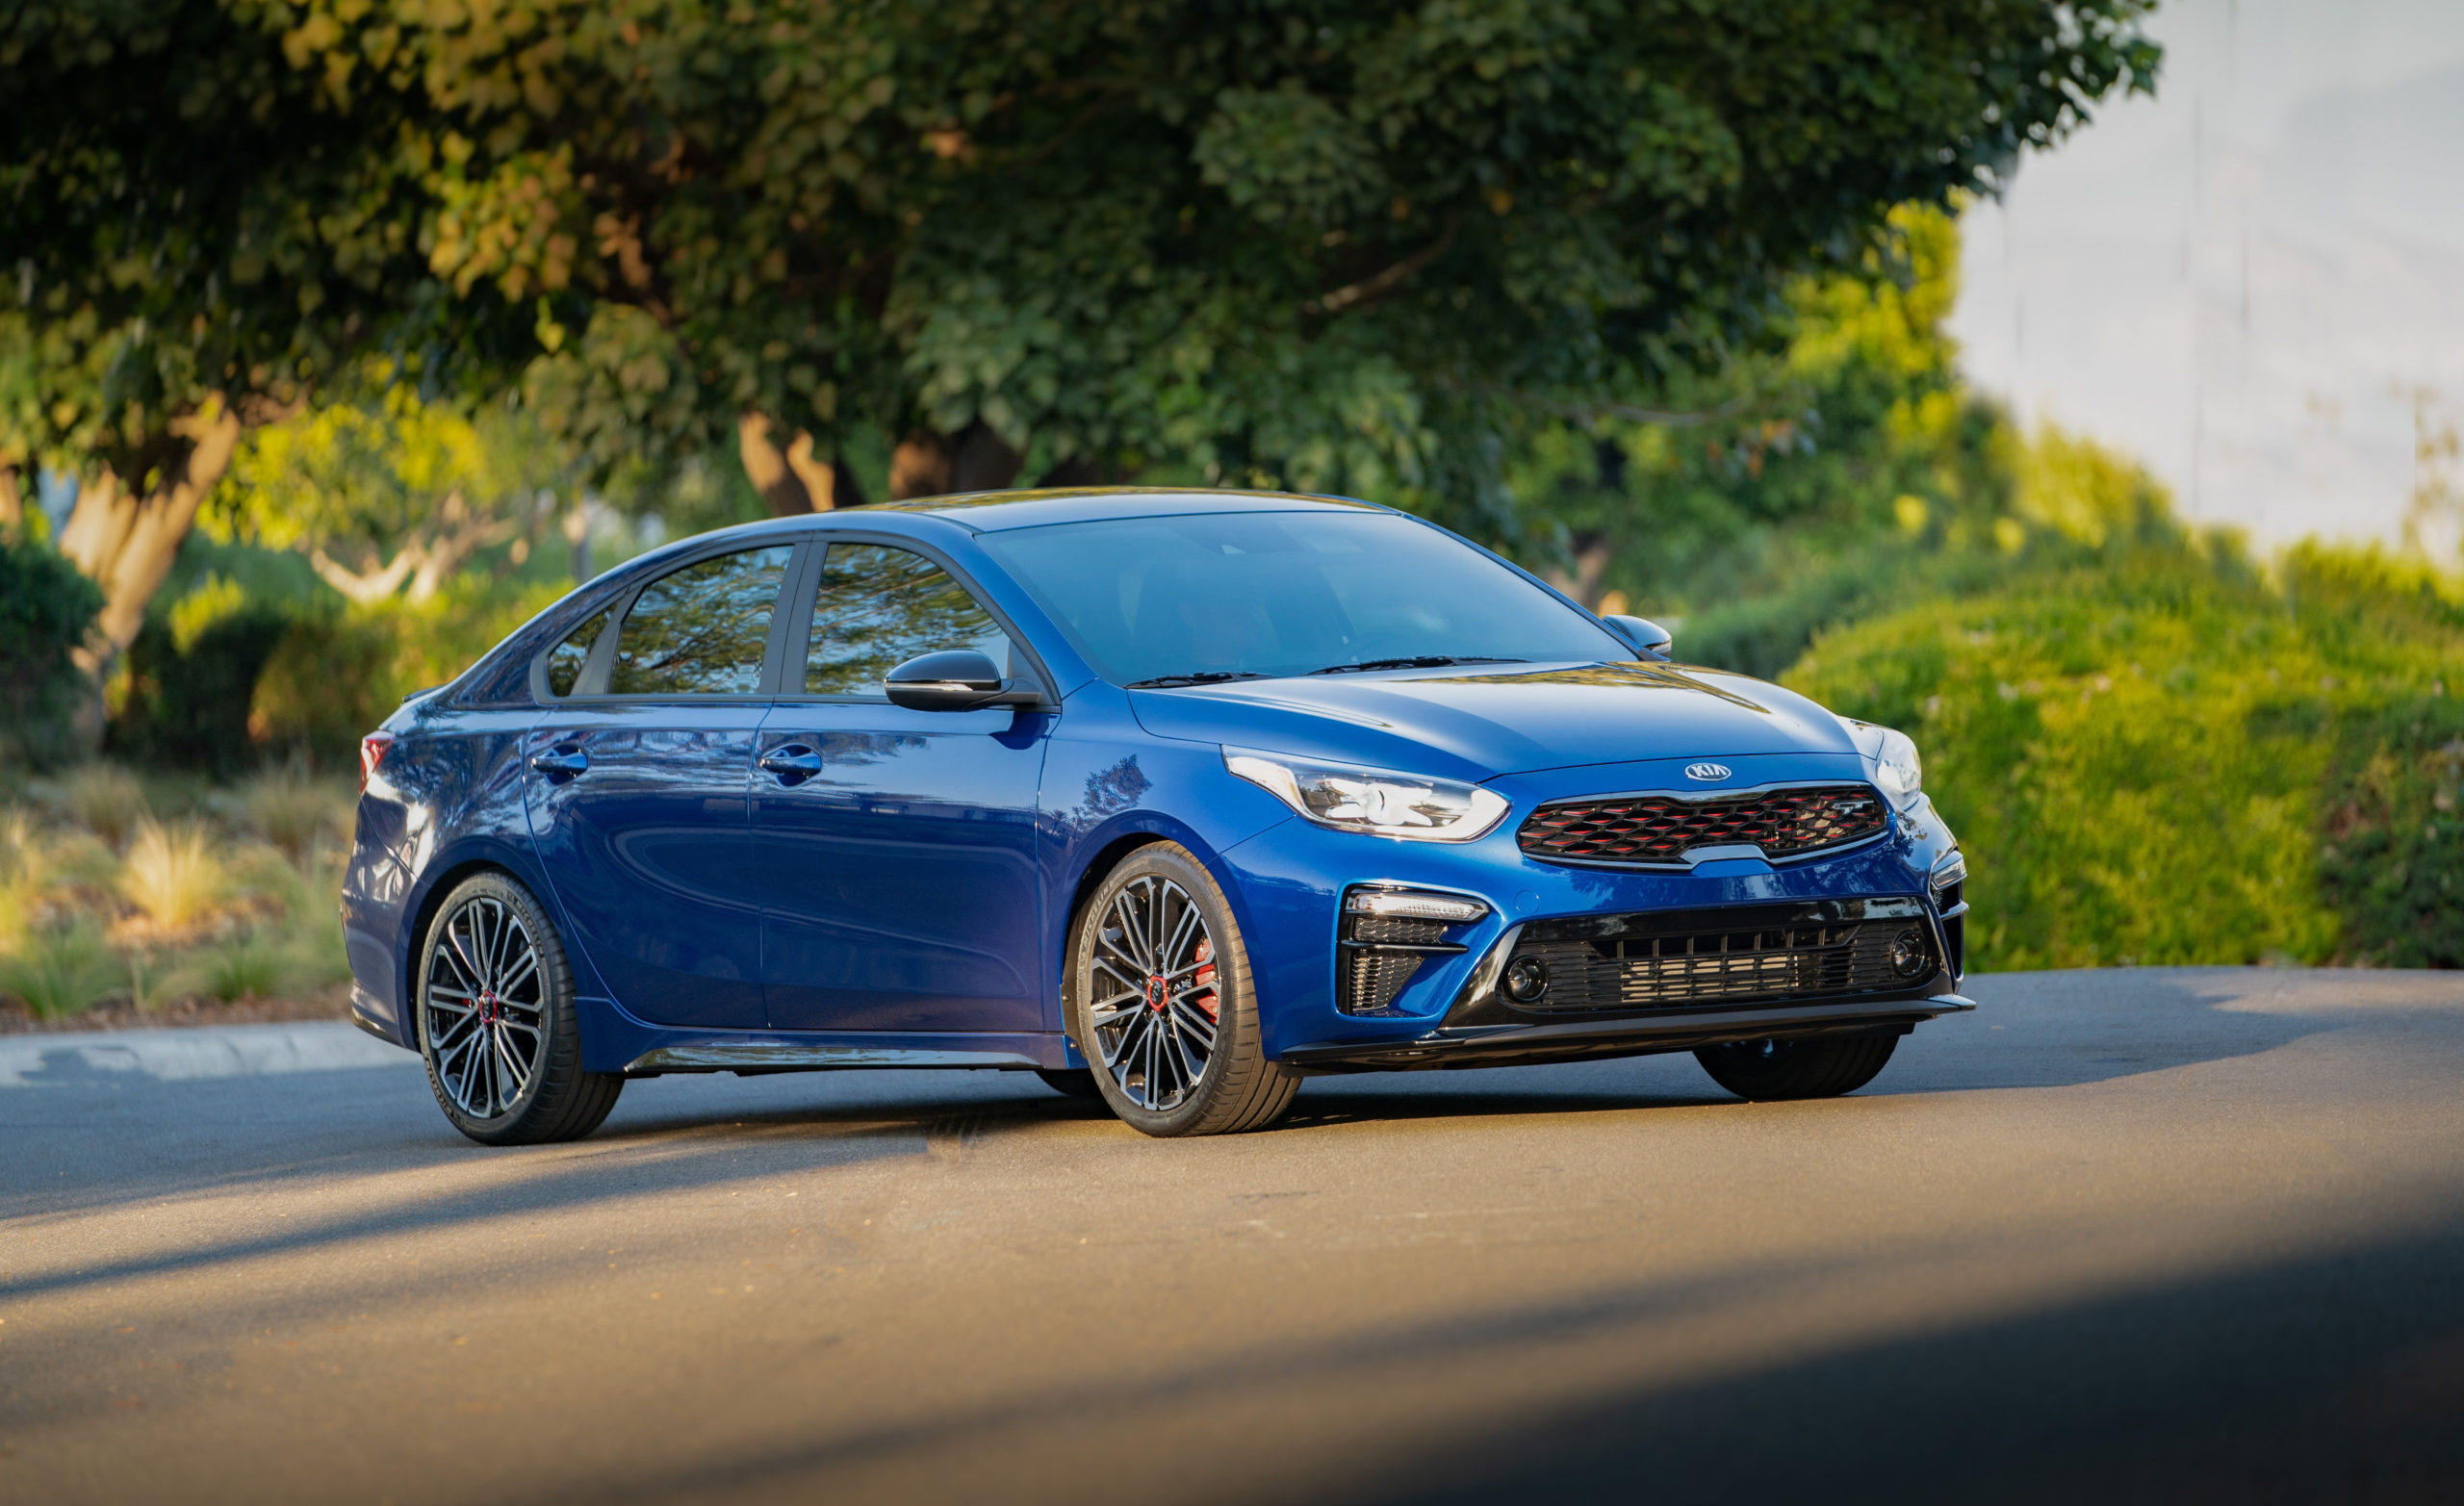 2020 Kia Forte Gt Gets 201 Turbocharged Horsepower For Under - 2022 Kia Forte Blue Release Date, Safety Feature